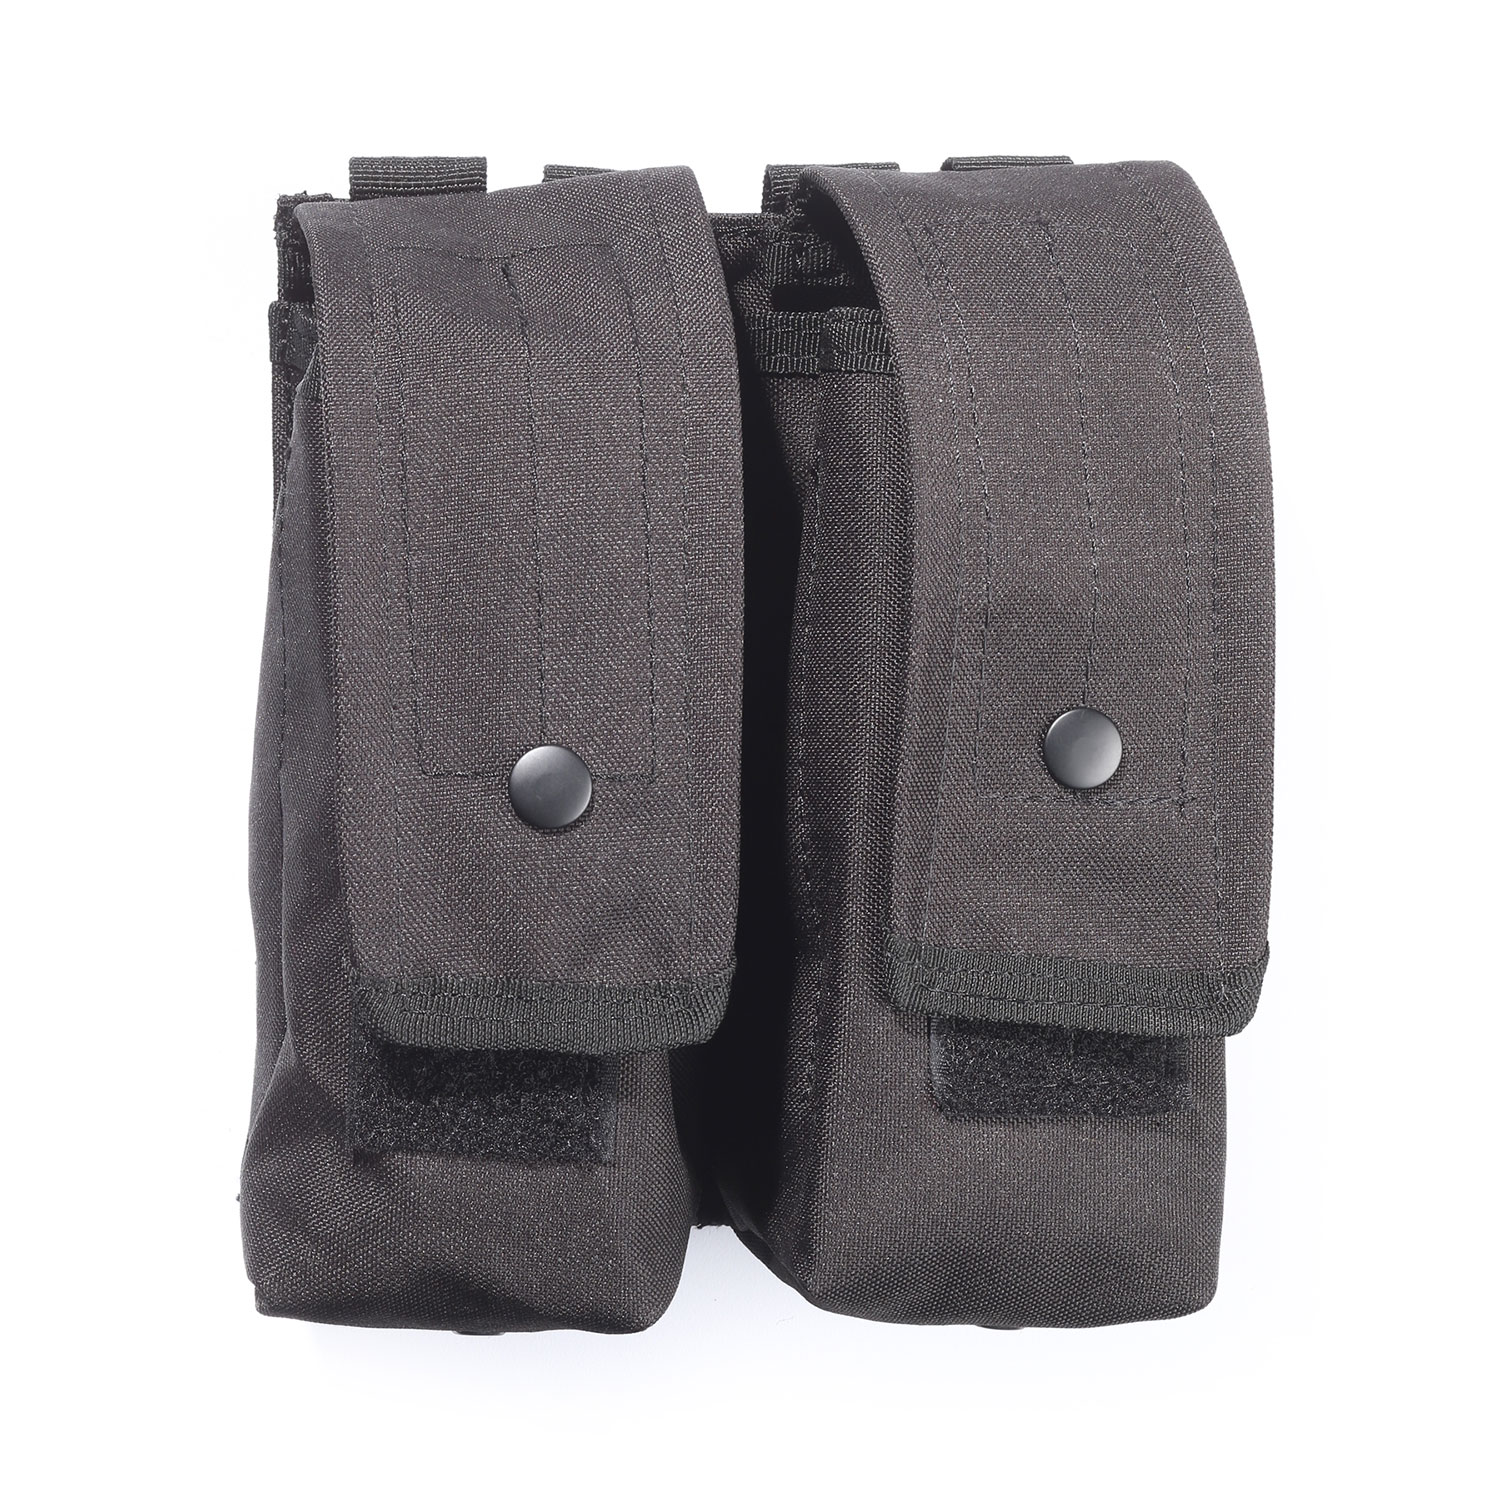 5ive Star Gear AKDP-5S AK47 Double Mag Pouch